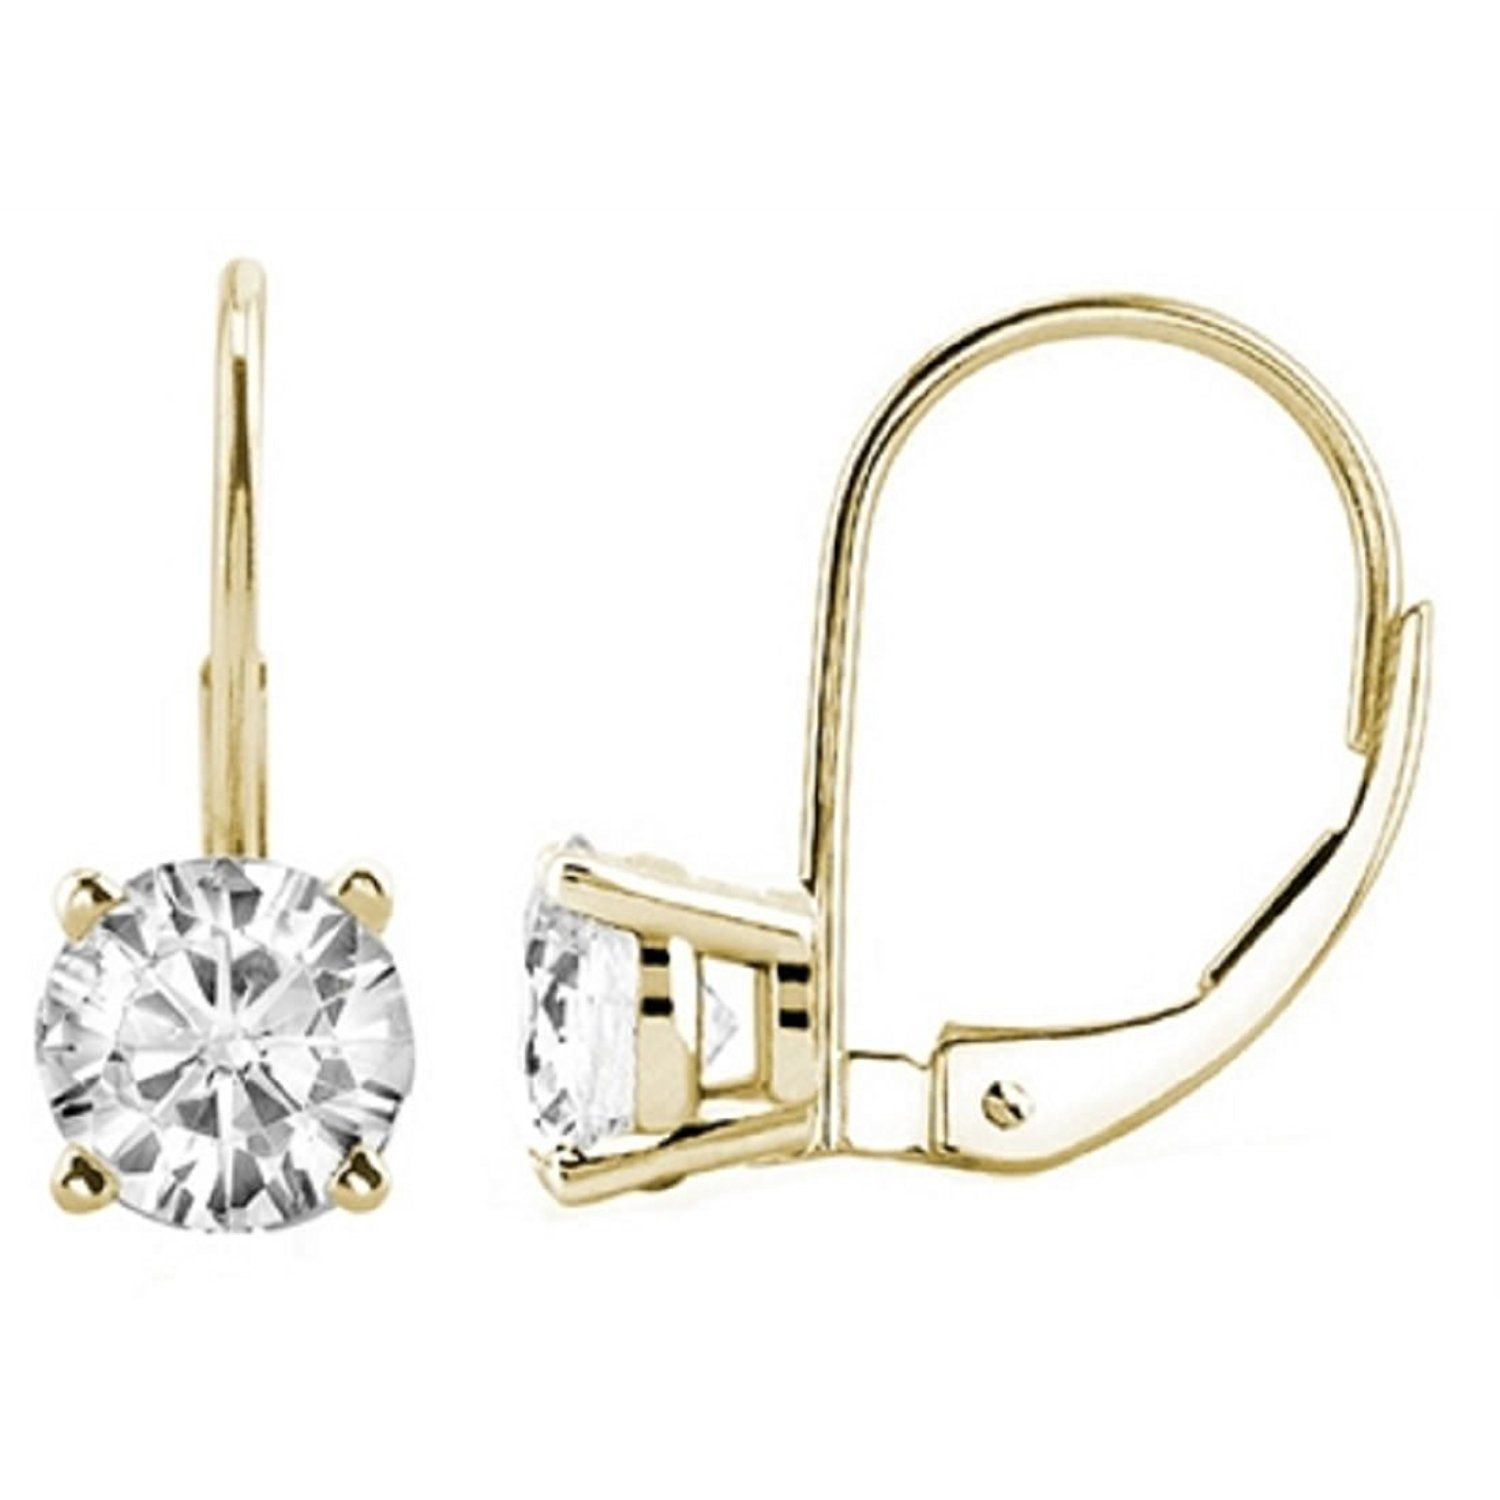 0 30 CTW Round White Diamond Leverback Earrings in 14K Yellow Gold